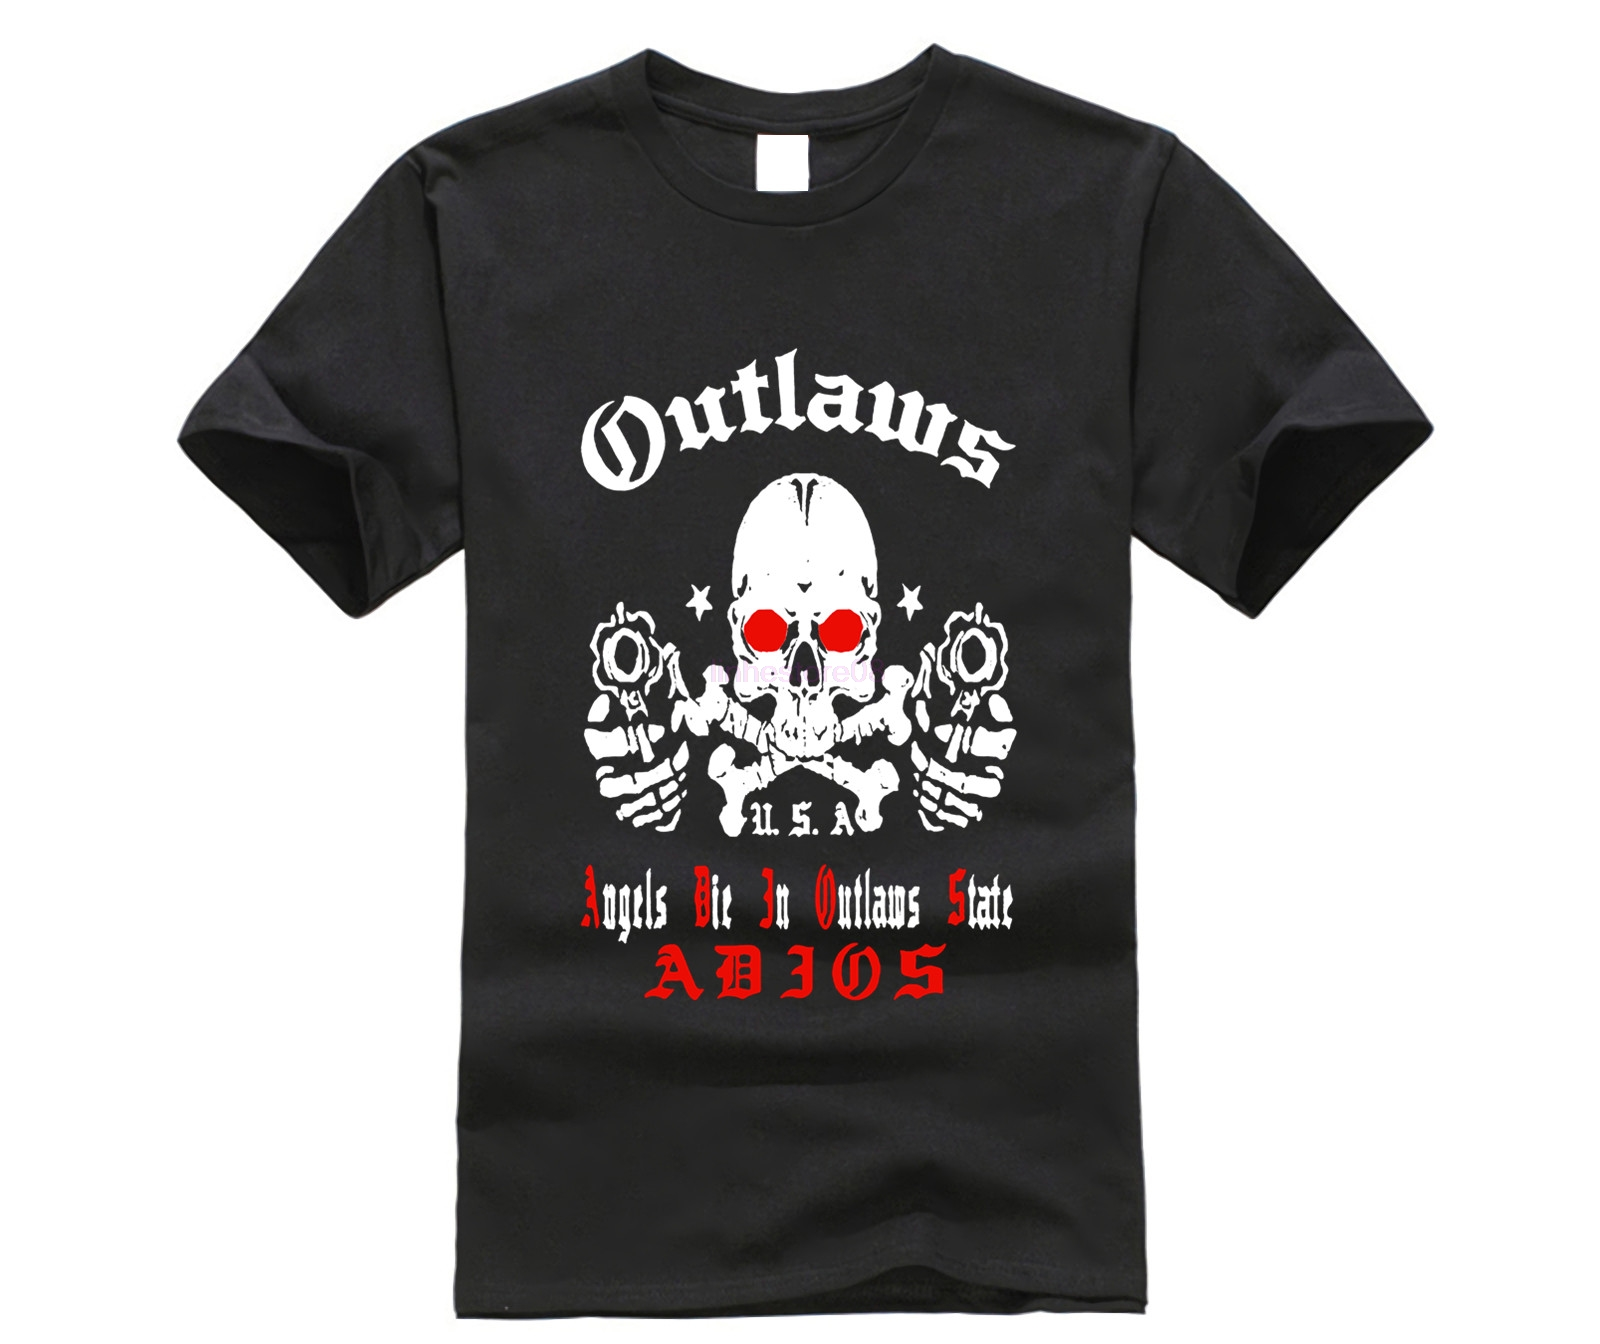 Adios Outlaws <font><b>MC</b></font> <font><b>T</b></font> <font><b>Shirt</b></font> Black Angels Die In OUtlaws State Tee Size S-3XL image